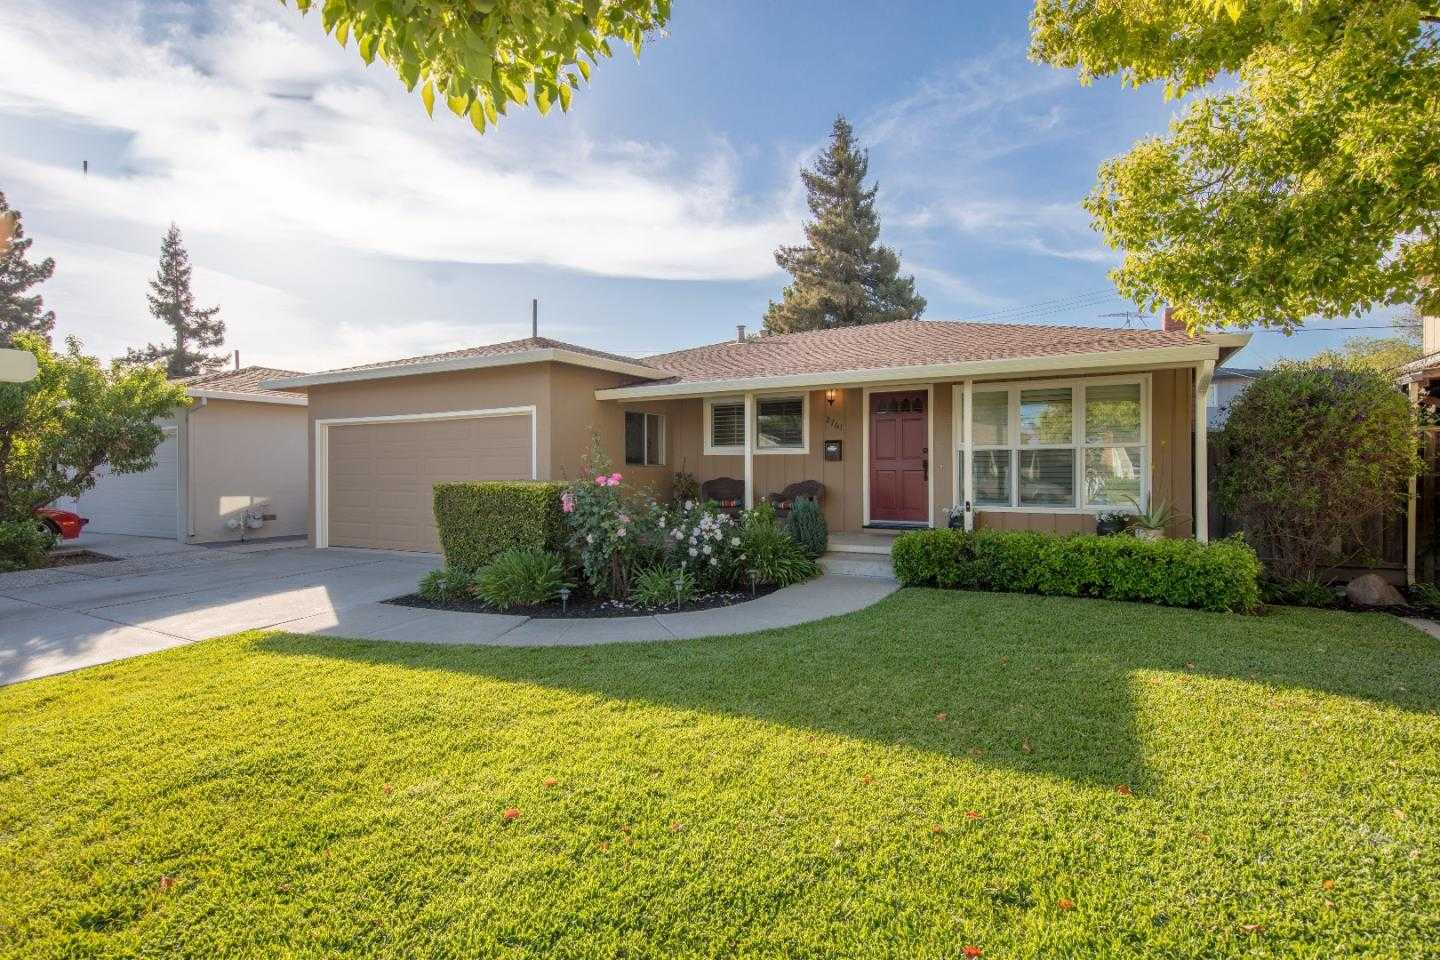 $1,448,000 - 3Br/2Ba -  for Sale in Santa Clara